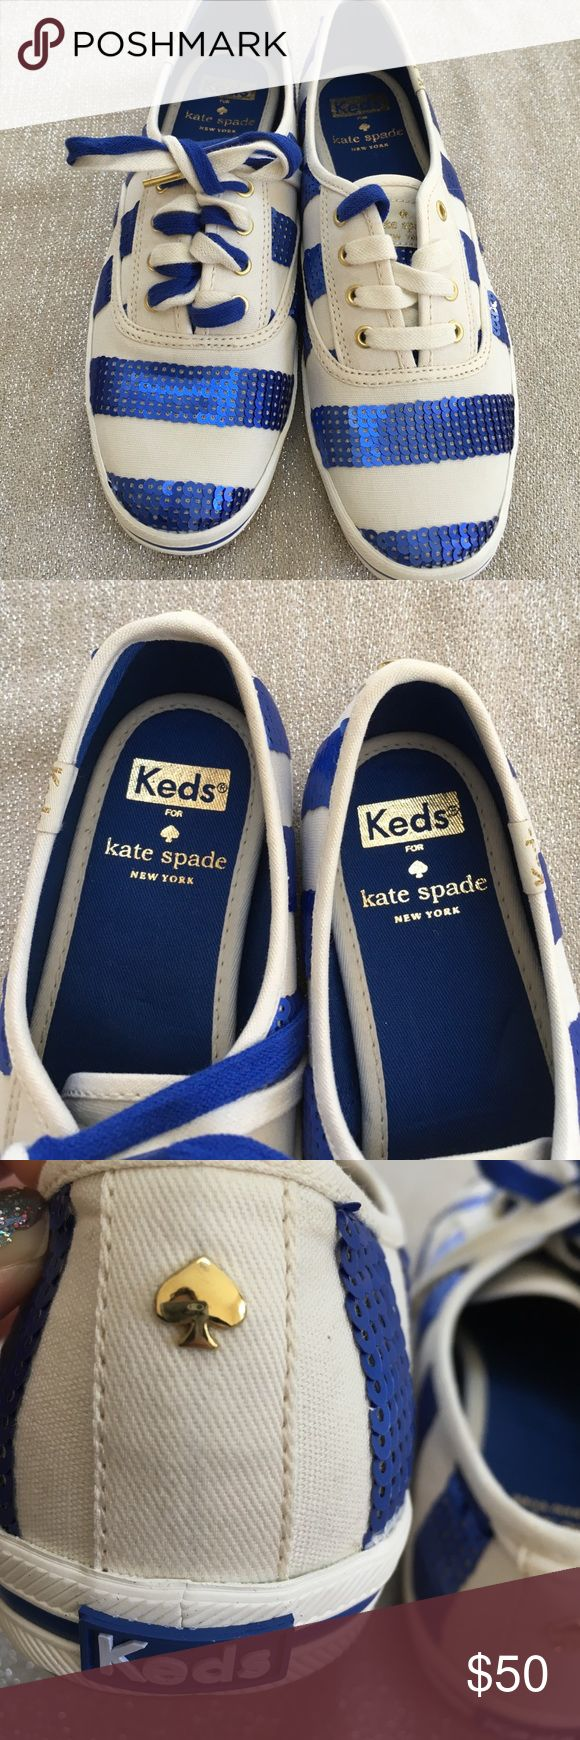 Keds for kate spade size 6 Keds for kate spade size 6.  New without box. Never worn. Cream color sneaker adorned with blue sequins.   These are awesome sneakers. Comes with two sets of laces a blue and a cream color. I laced one with both to show versatility.  Make an offer!!! kate spade Shoes Sneakers